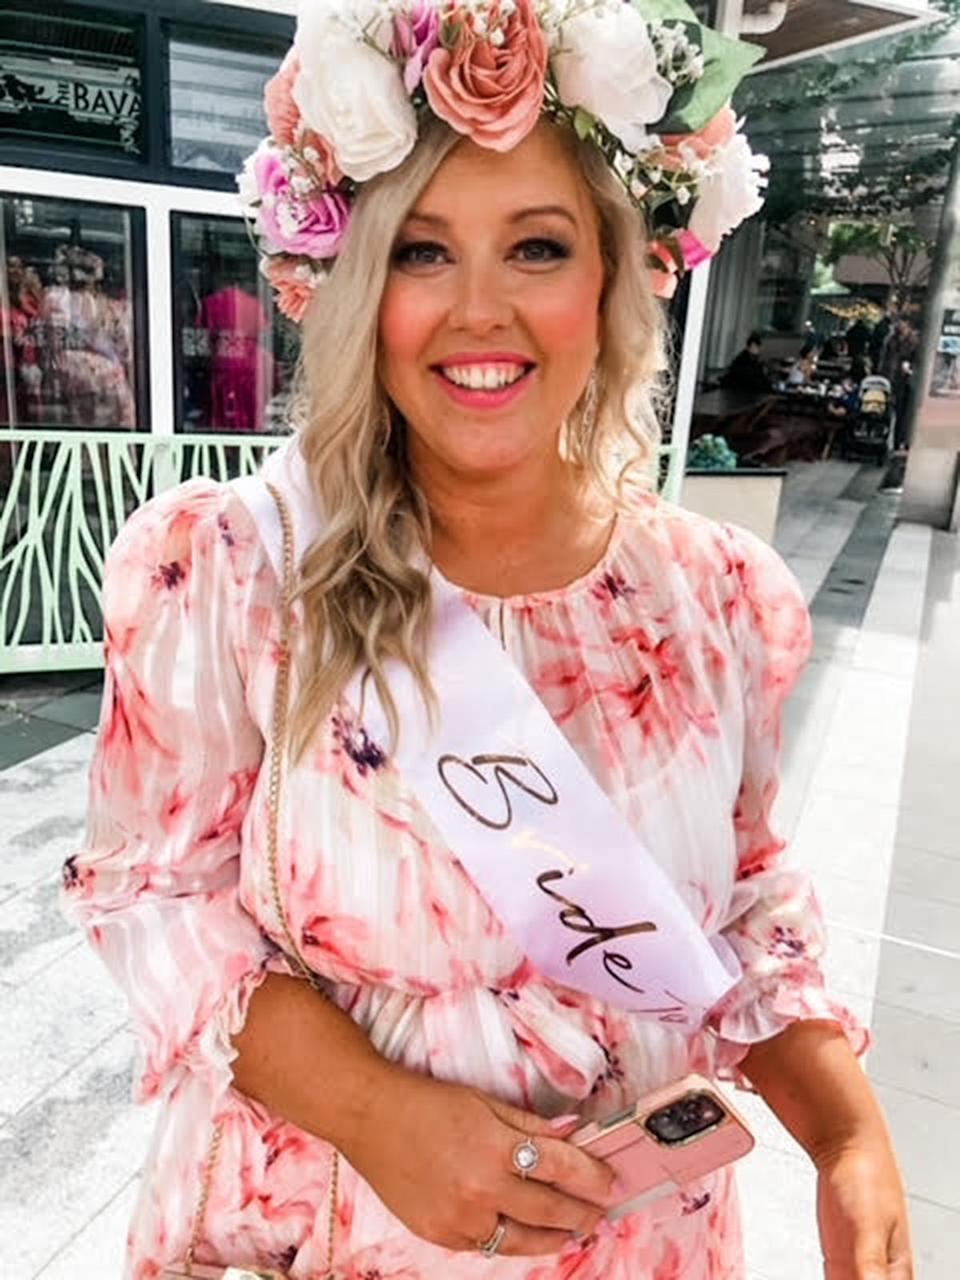 A blonde woman wearing a floral dress anda  flower crown